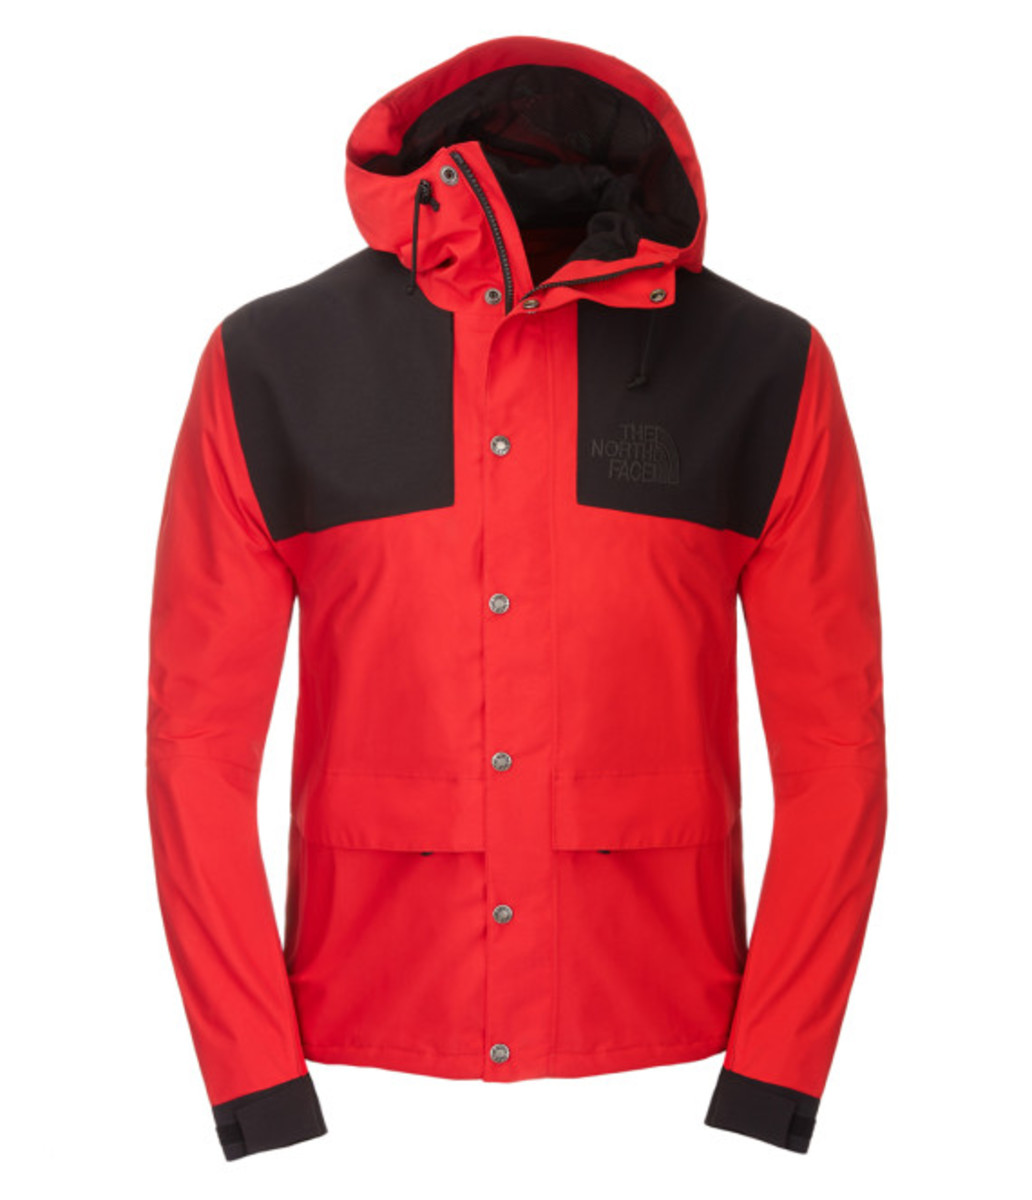 the-north-face-mountain-jacket-05